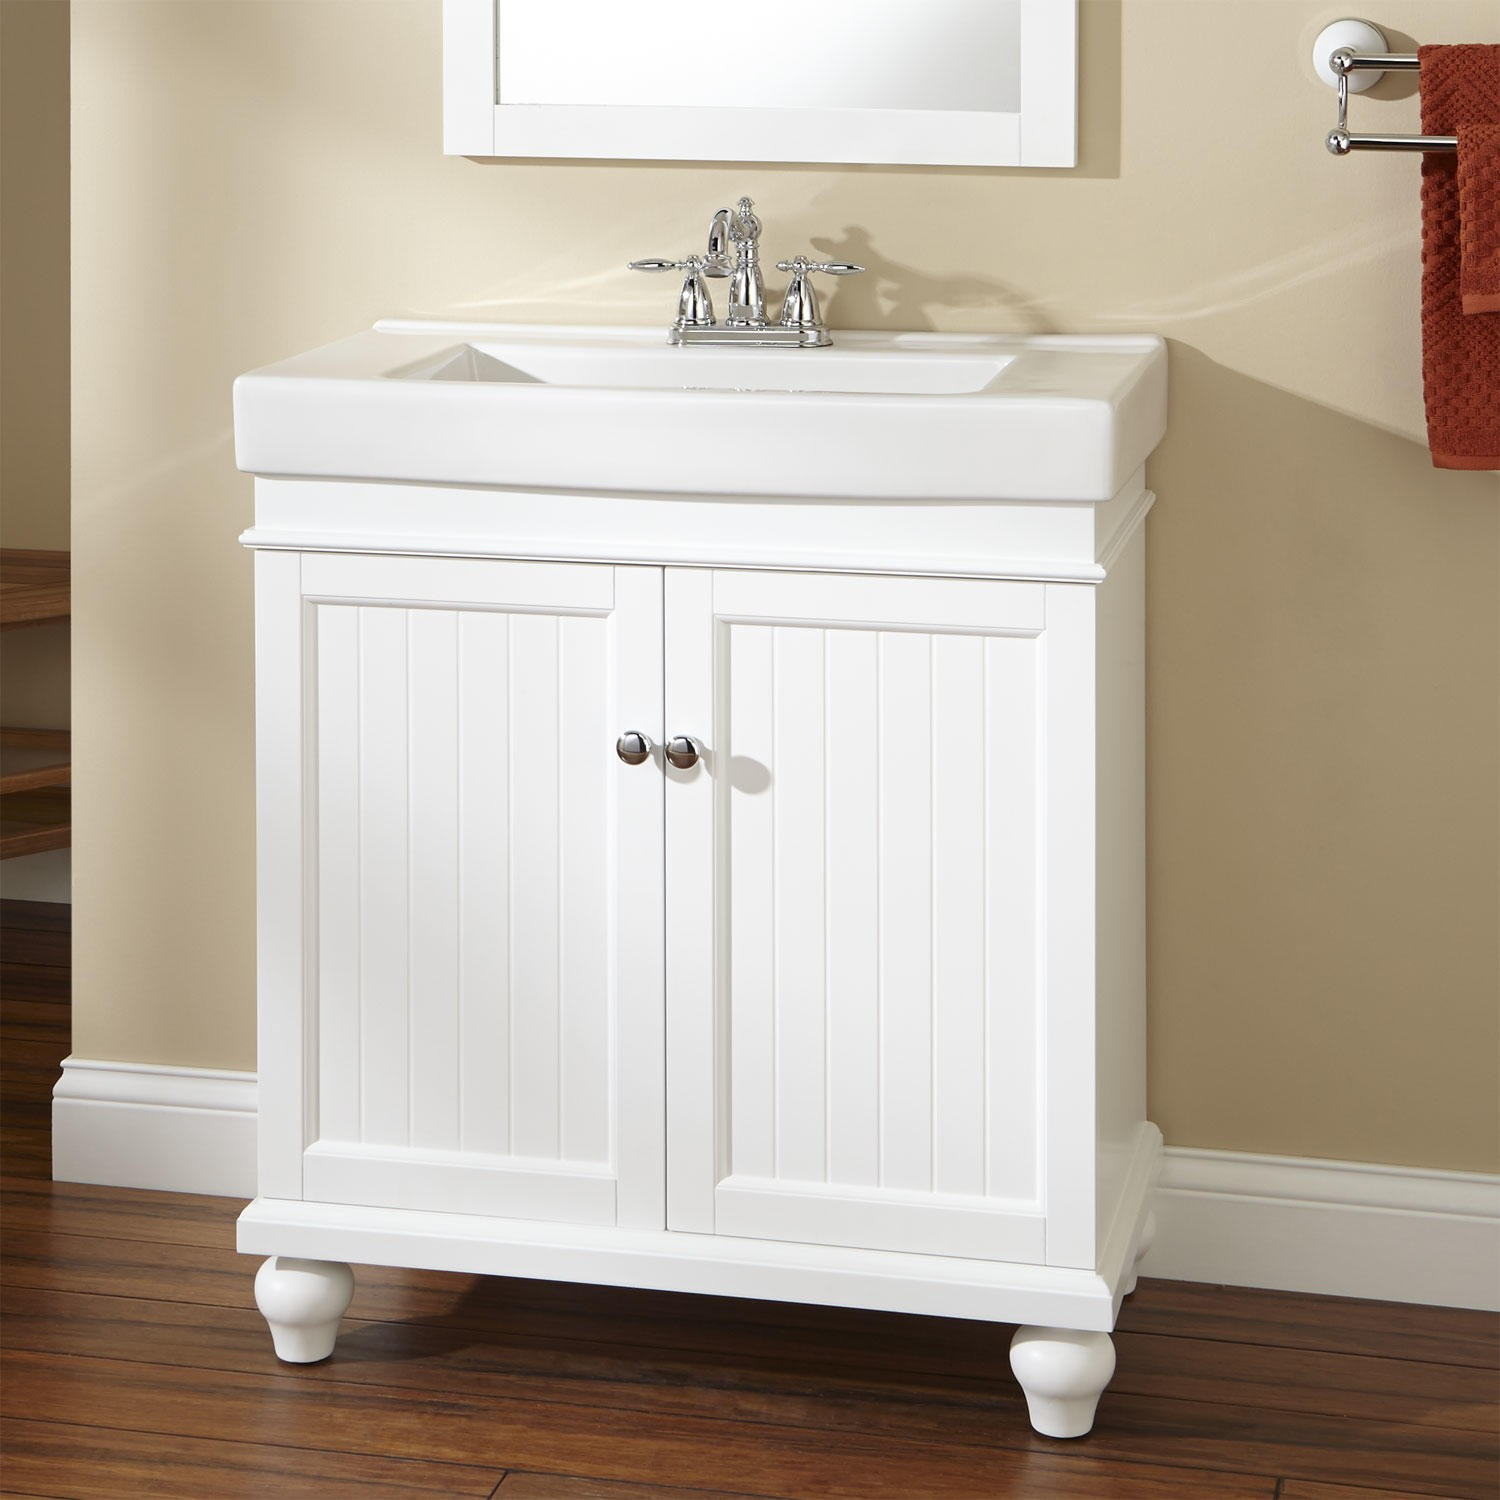 Picture of: Charming Bathroom Vanity with Sink